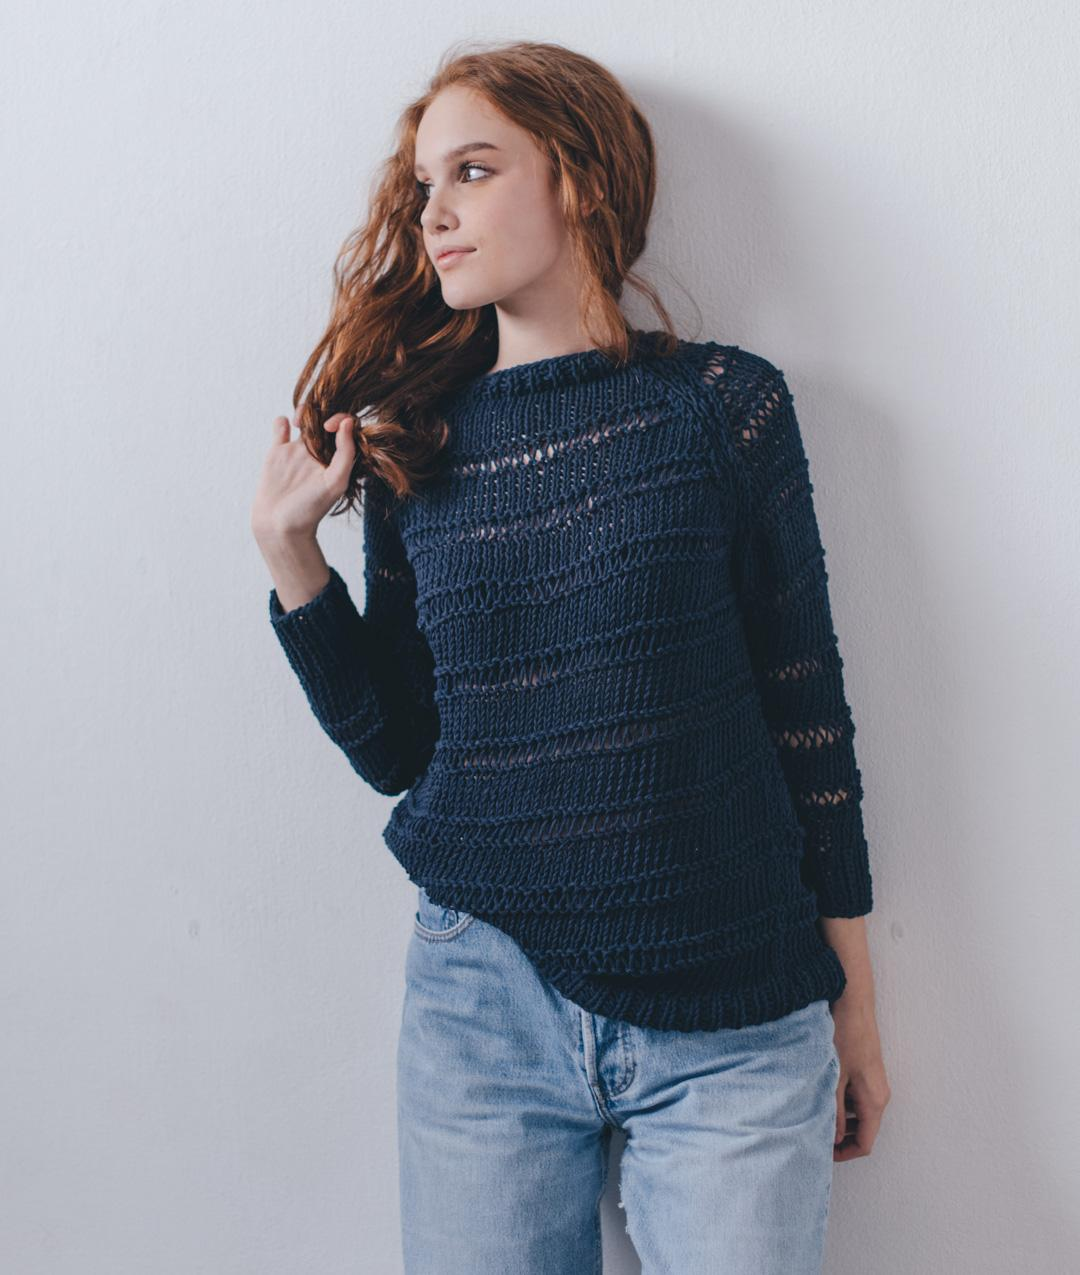 Cotone - Kit - Georgia Sweater  - 1